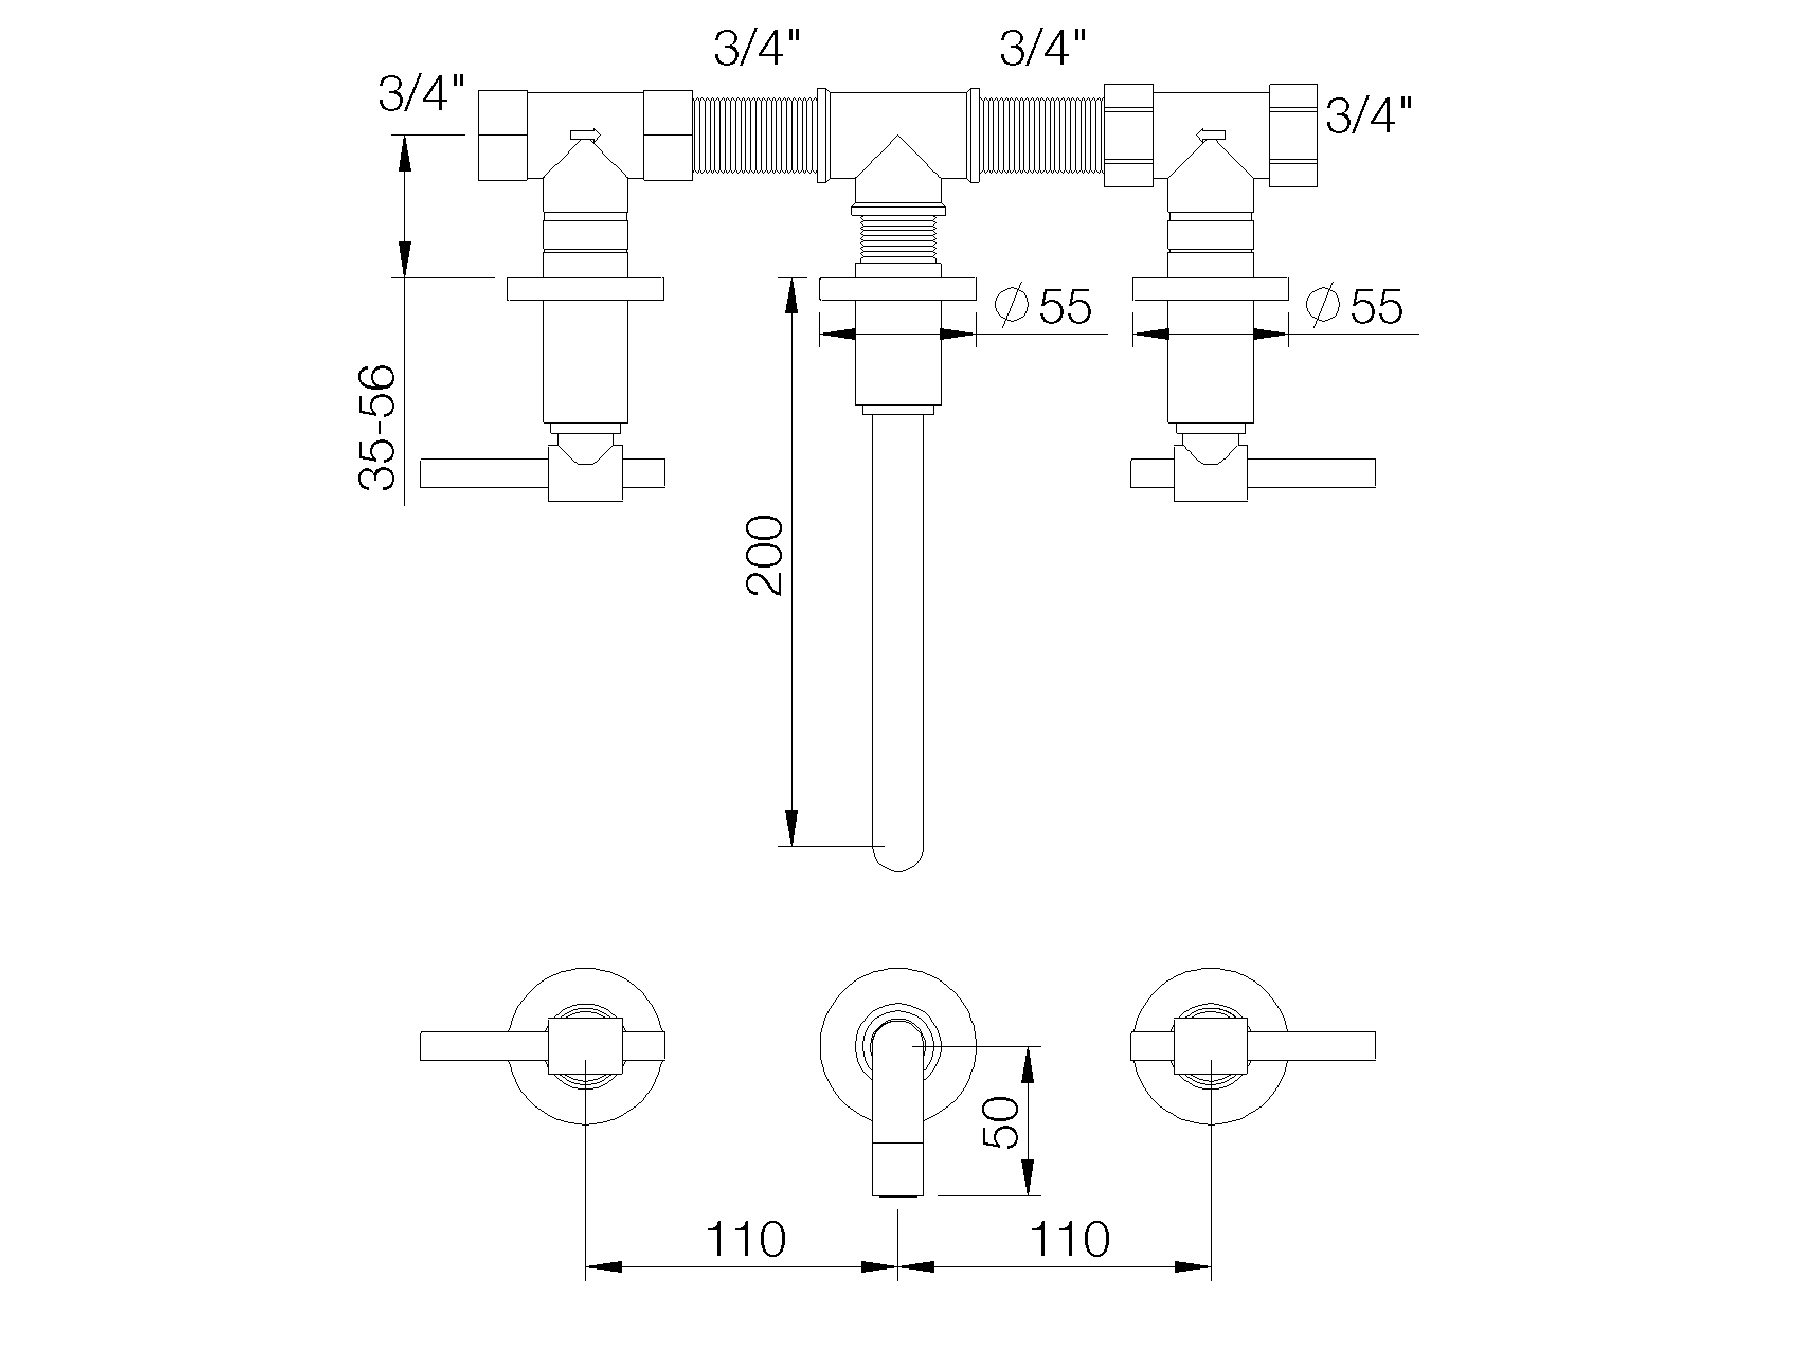 Faucet Tap Concealed Wall Mounted 3 Hole Washbasin Mixer Schematic Engineering Diagram 4027 51